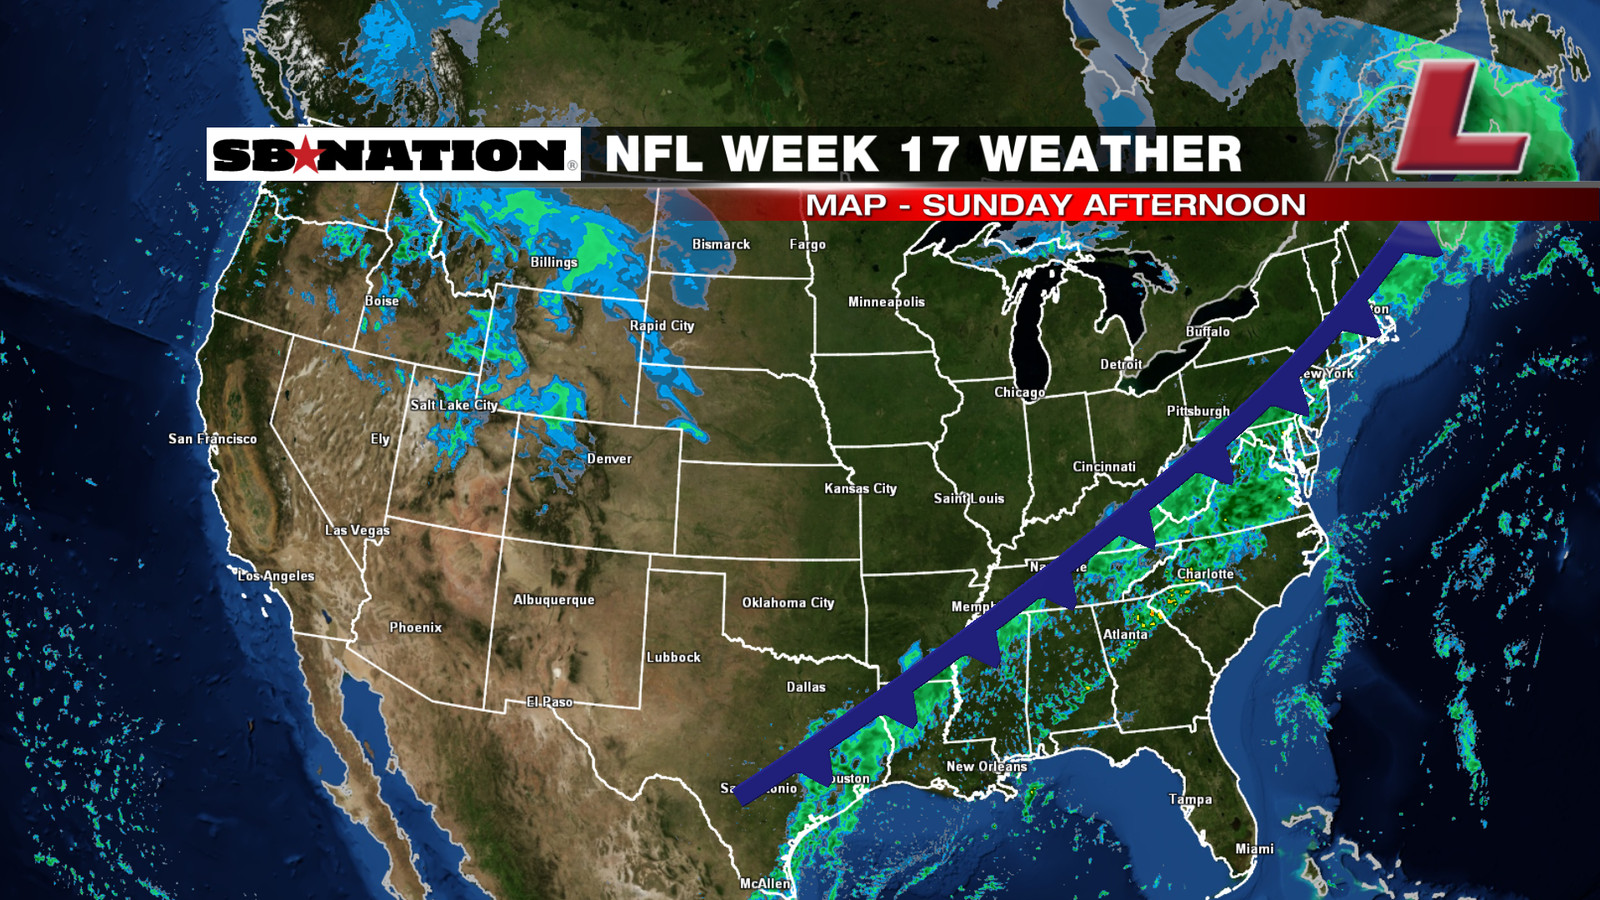 NFL weather forecast, Week 17: Rainy weather in the